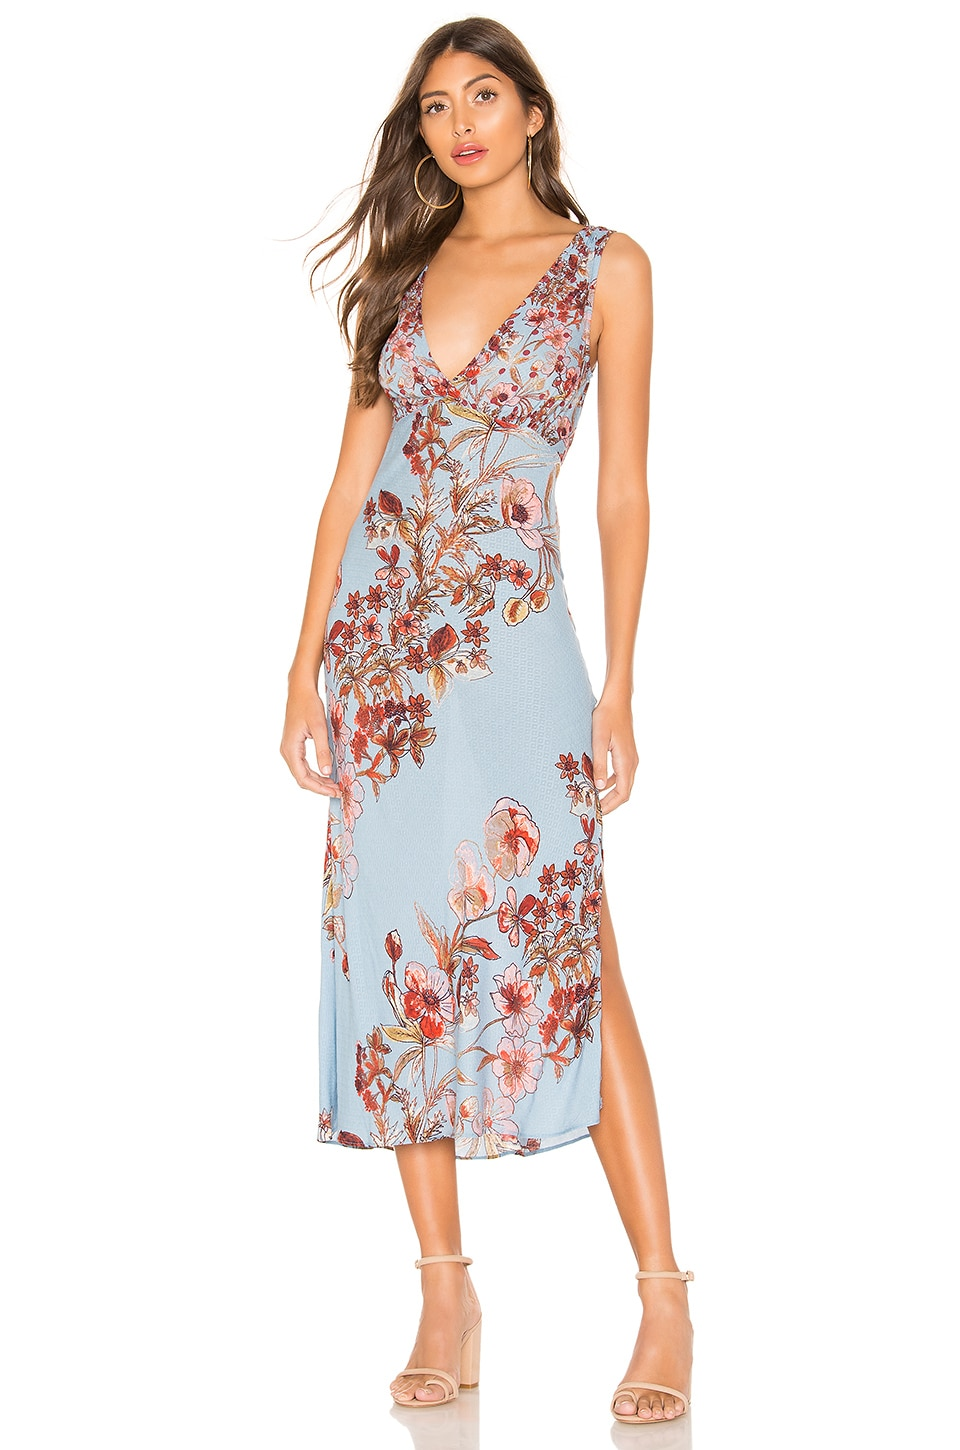 Free People Never Too Late Maxi Dress in Blue